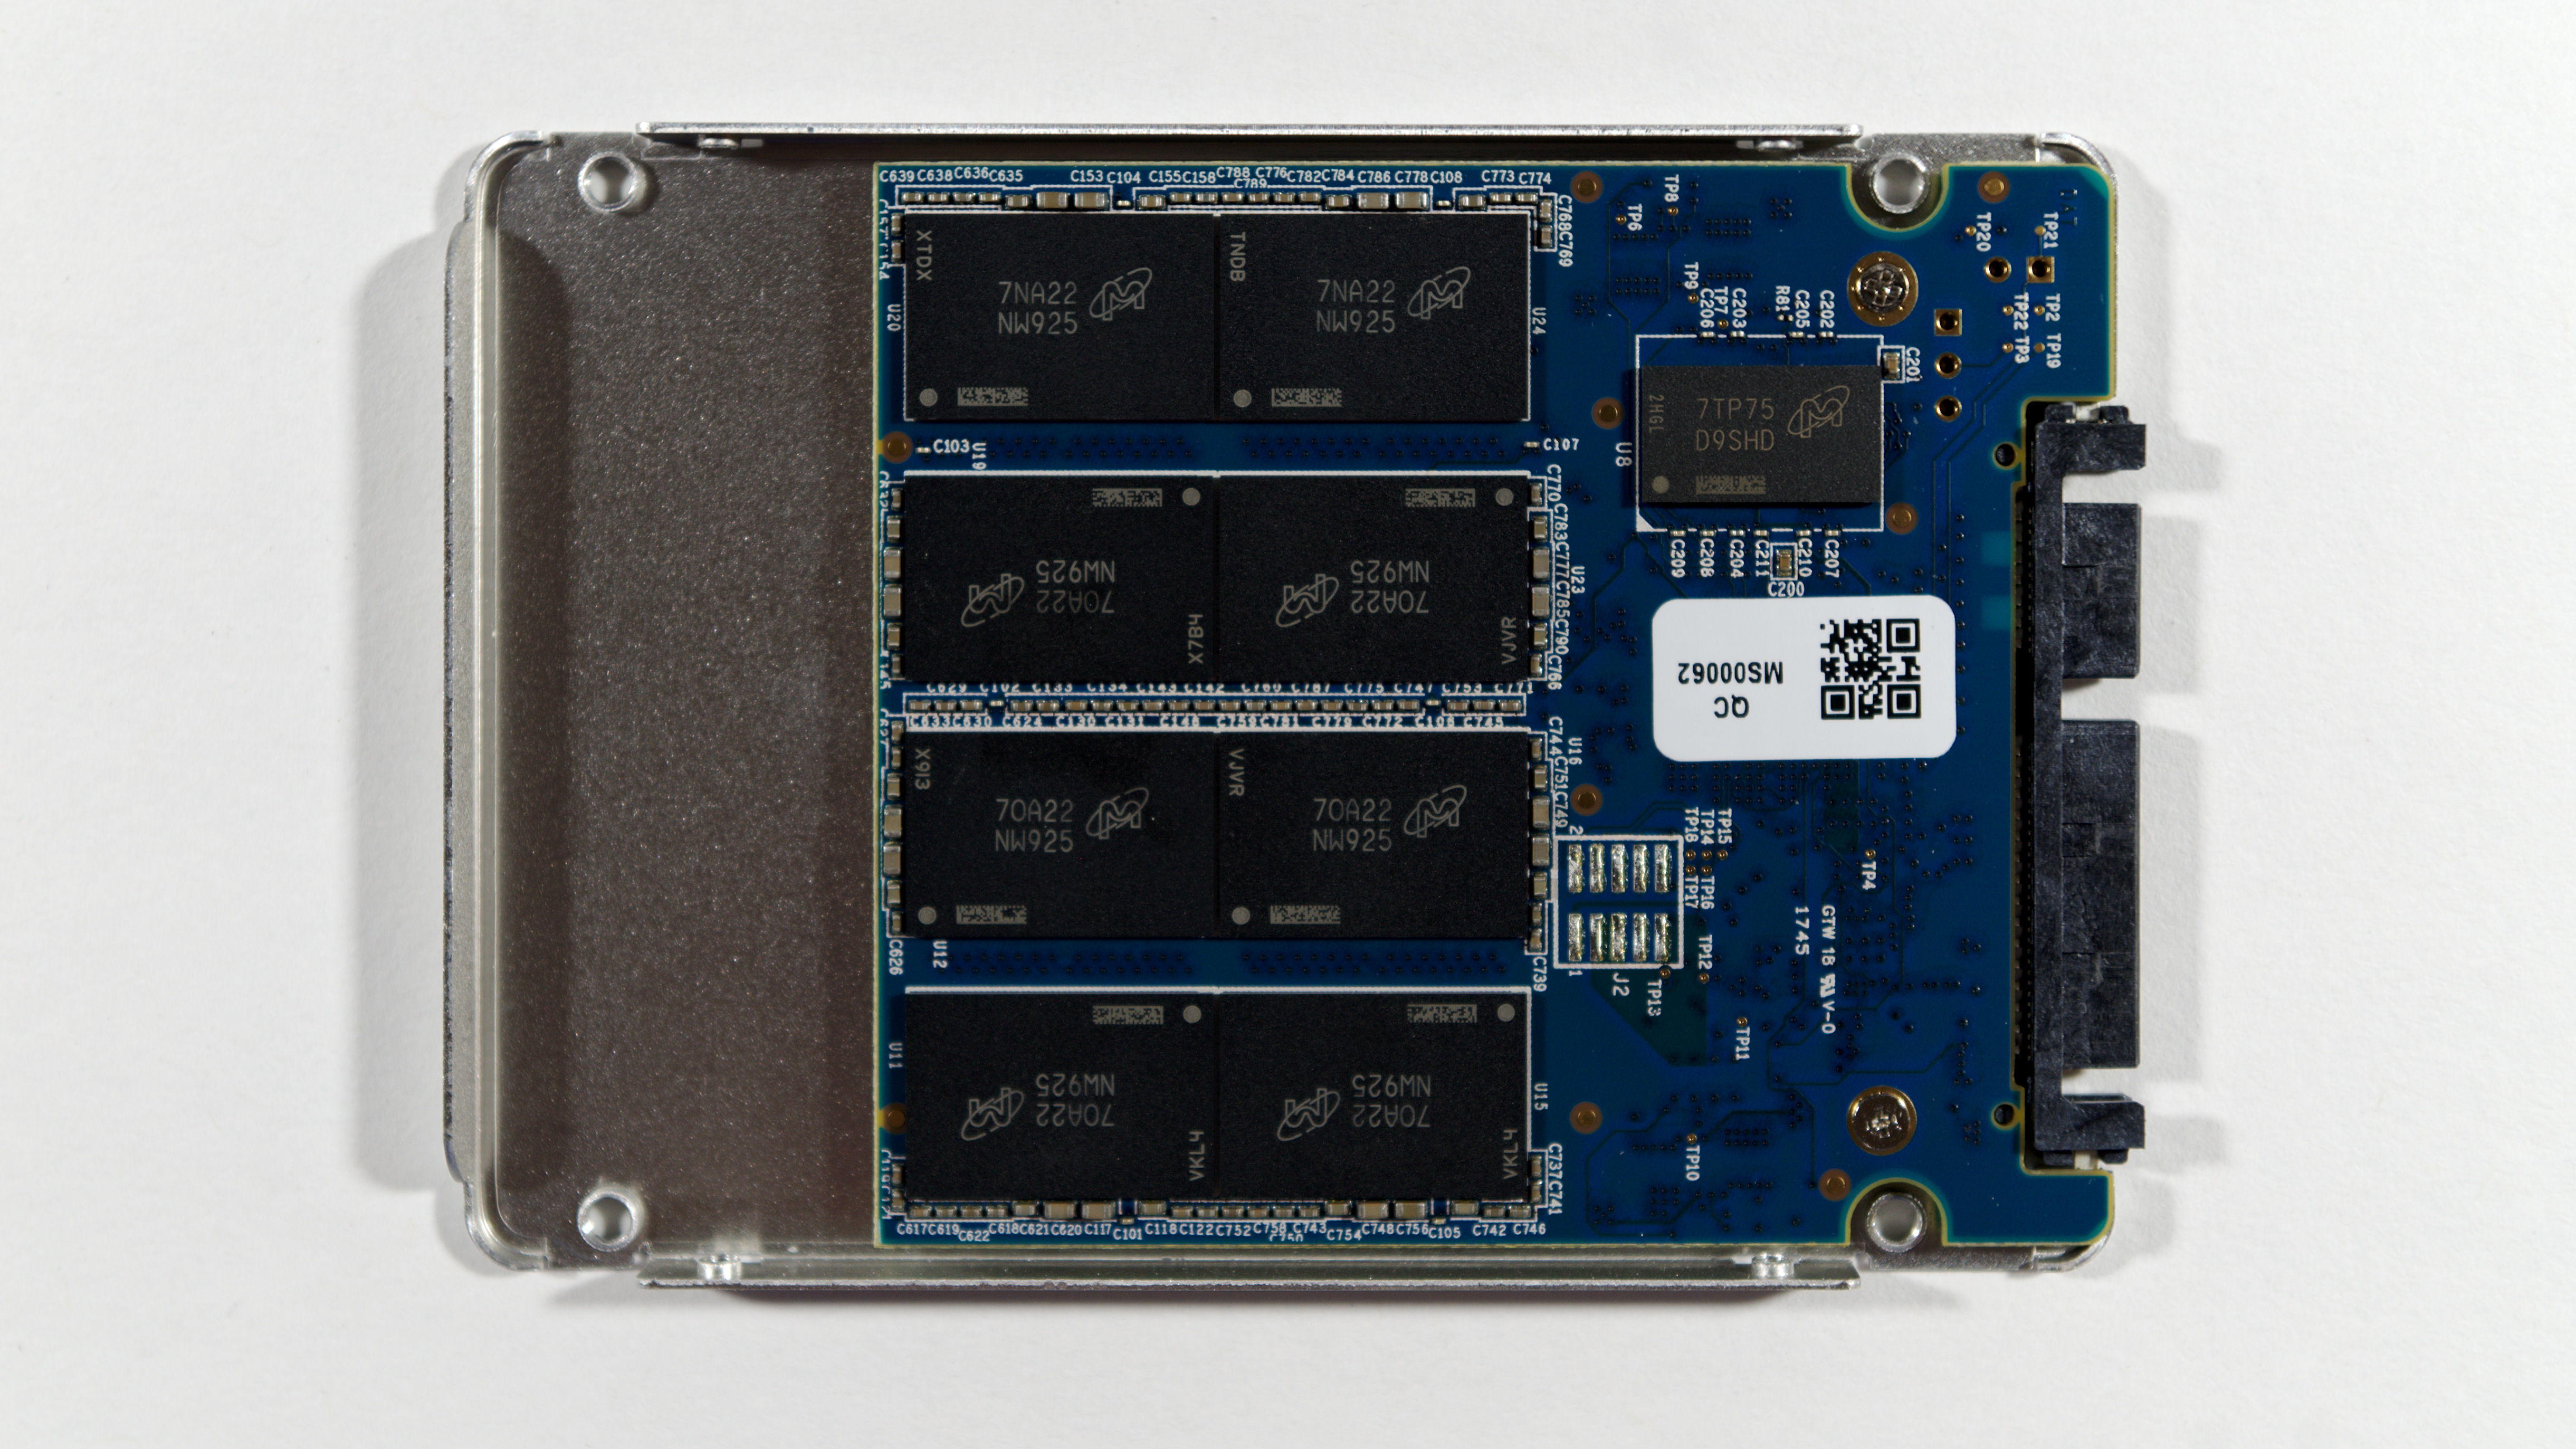 The Crucial MX500 1TB SSD Review: Breaking The SATA Mold